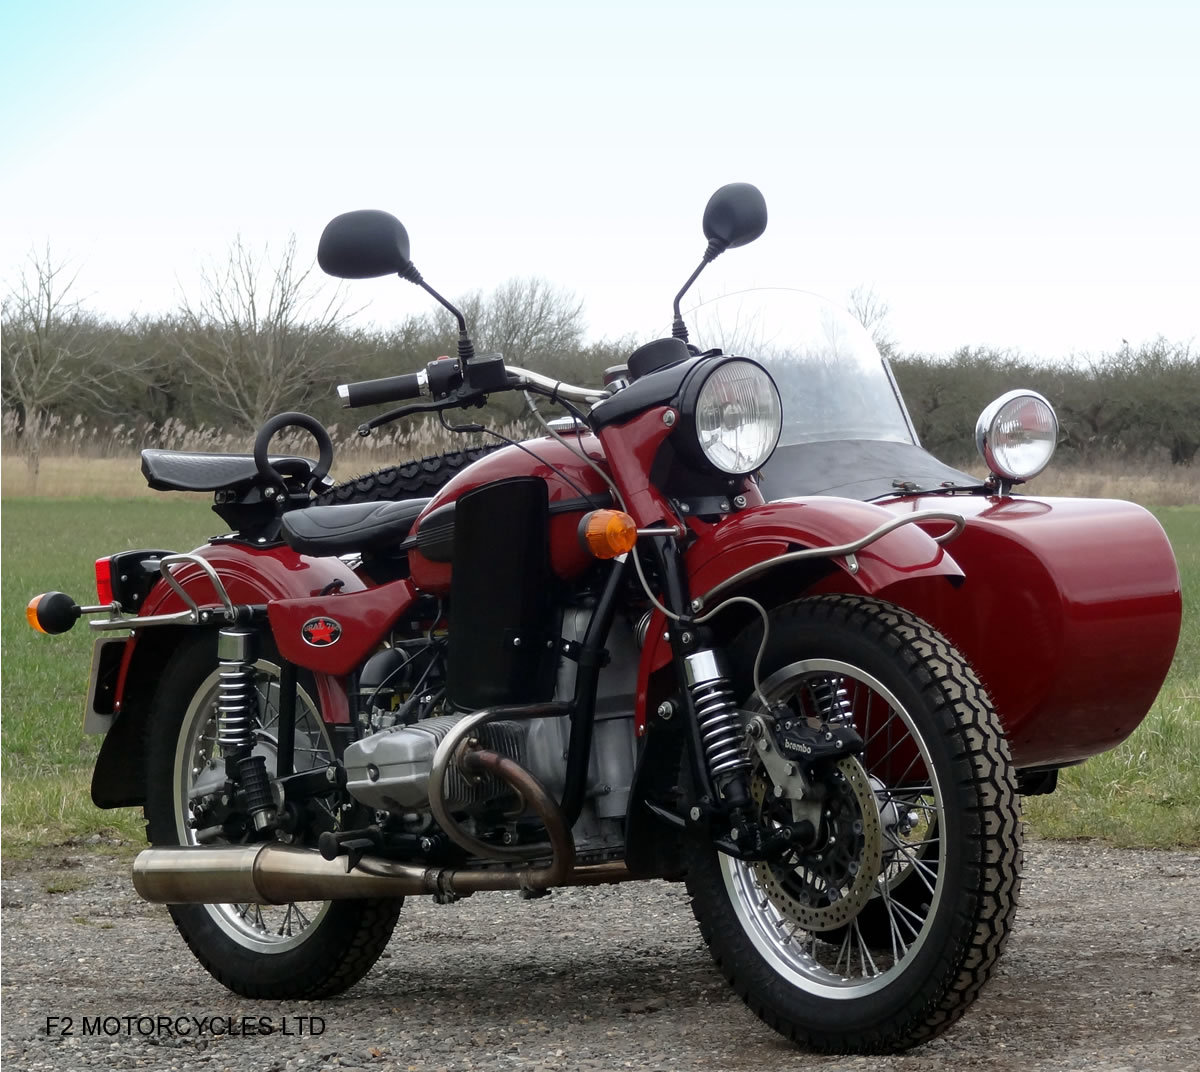 2011 Ural 750 Tourist, low mileage, UK spec, ready to ride SOLD (picture 1 of 6)